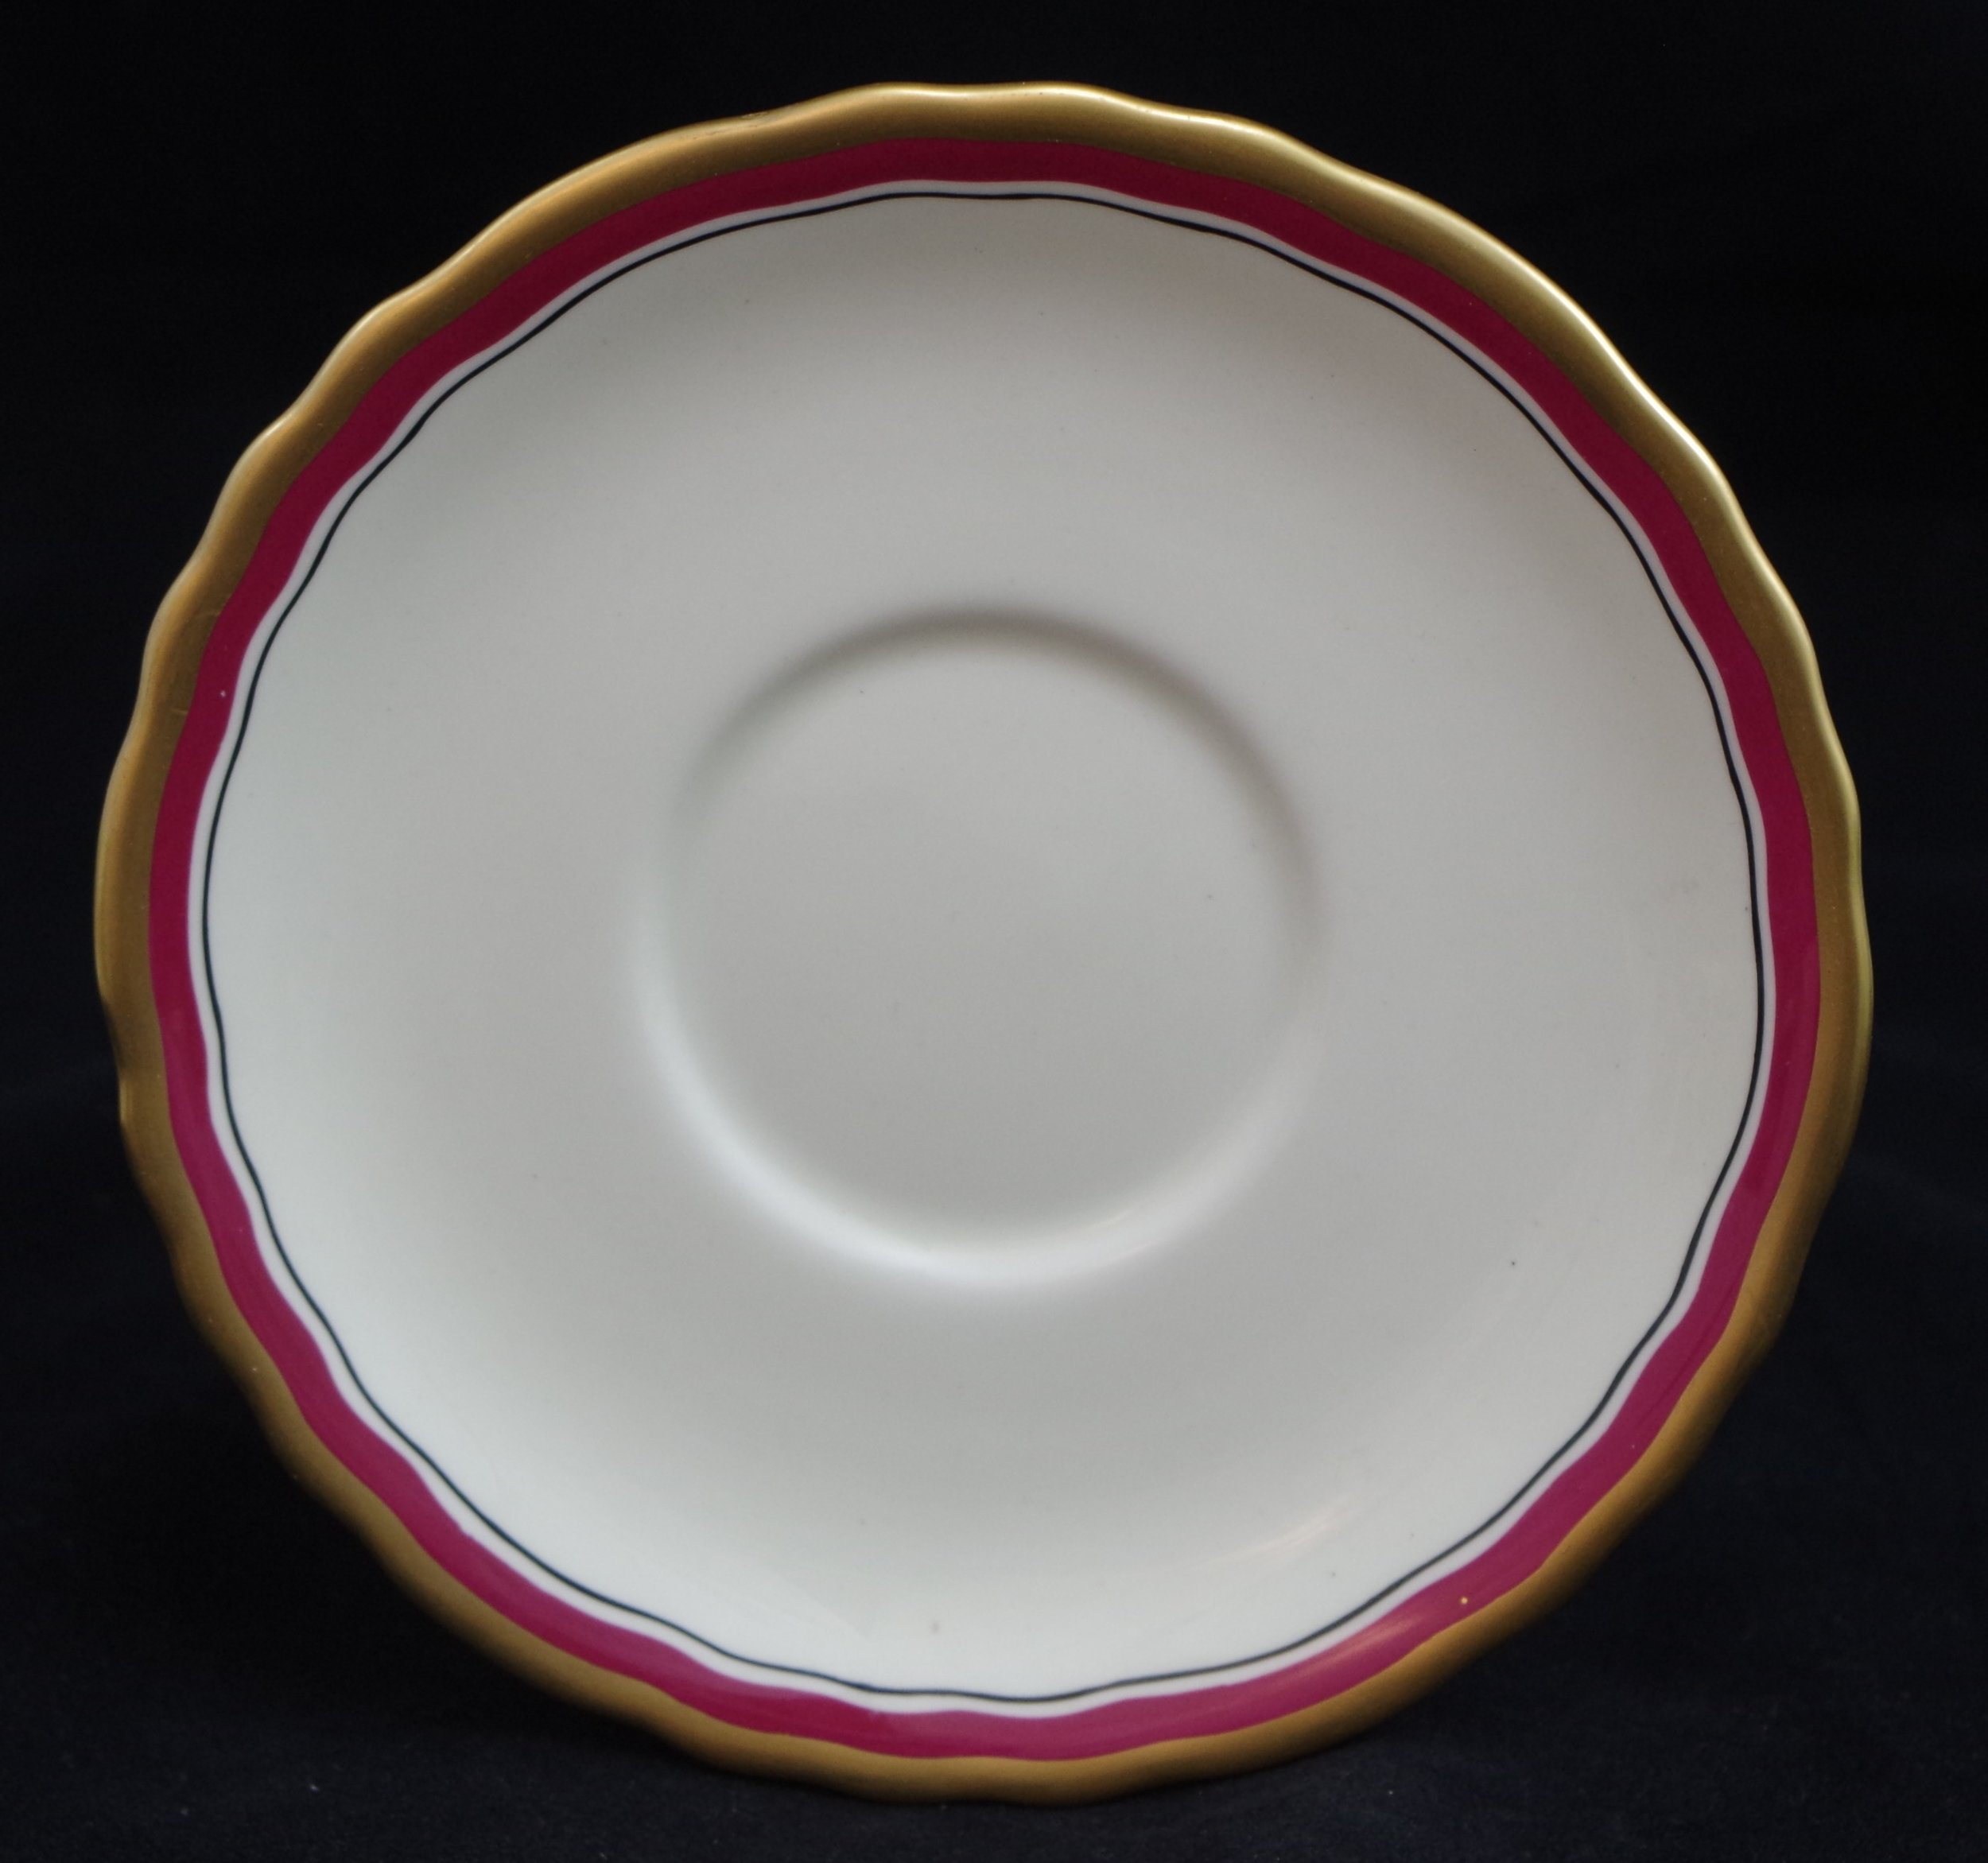 royal-crown-derby-ely-soup-and-stand-ivory-ground-inside-thick-gold-edge-maroon-band-black-line-saucer